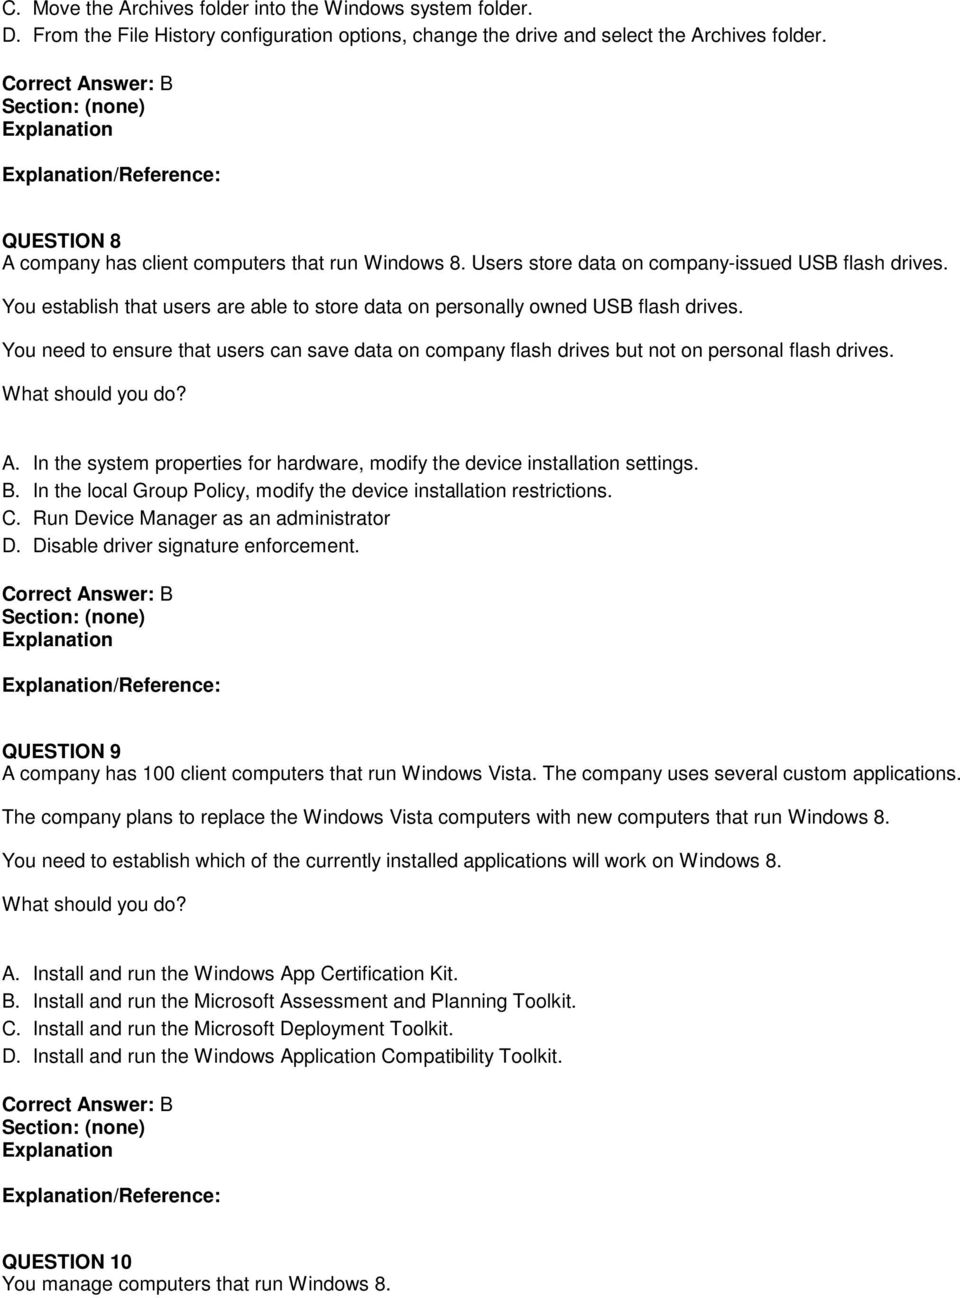 Microsoft exam questions answers pdf you establish that users are able to store data on personally owned usb flash drives 1betcityfo Image collections